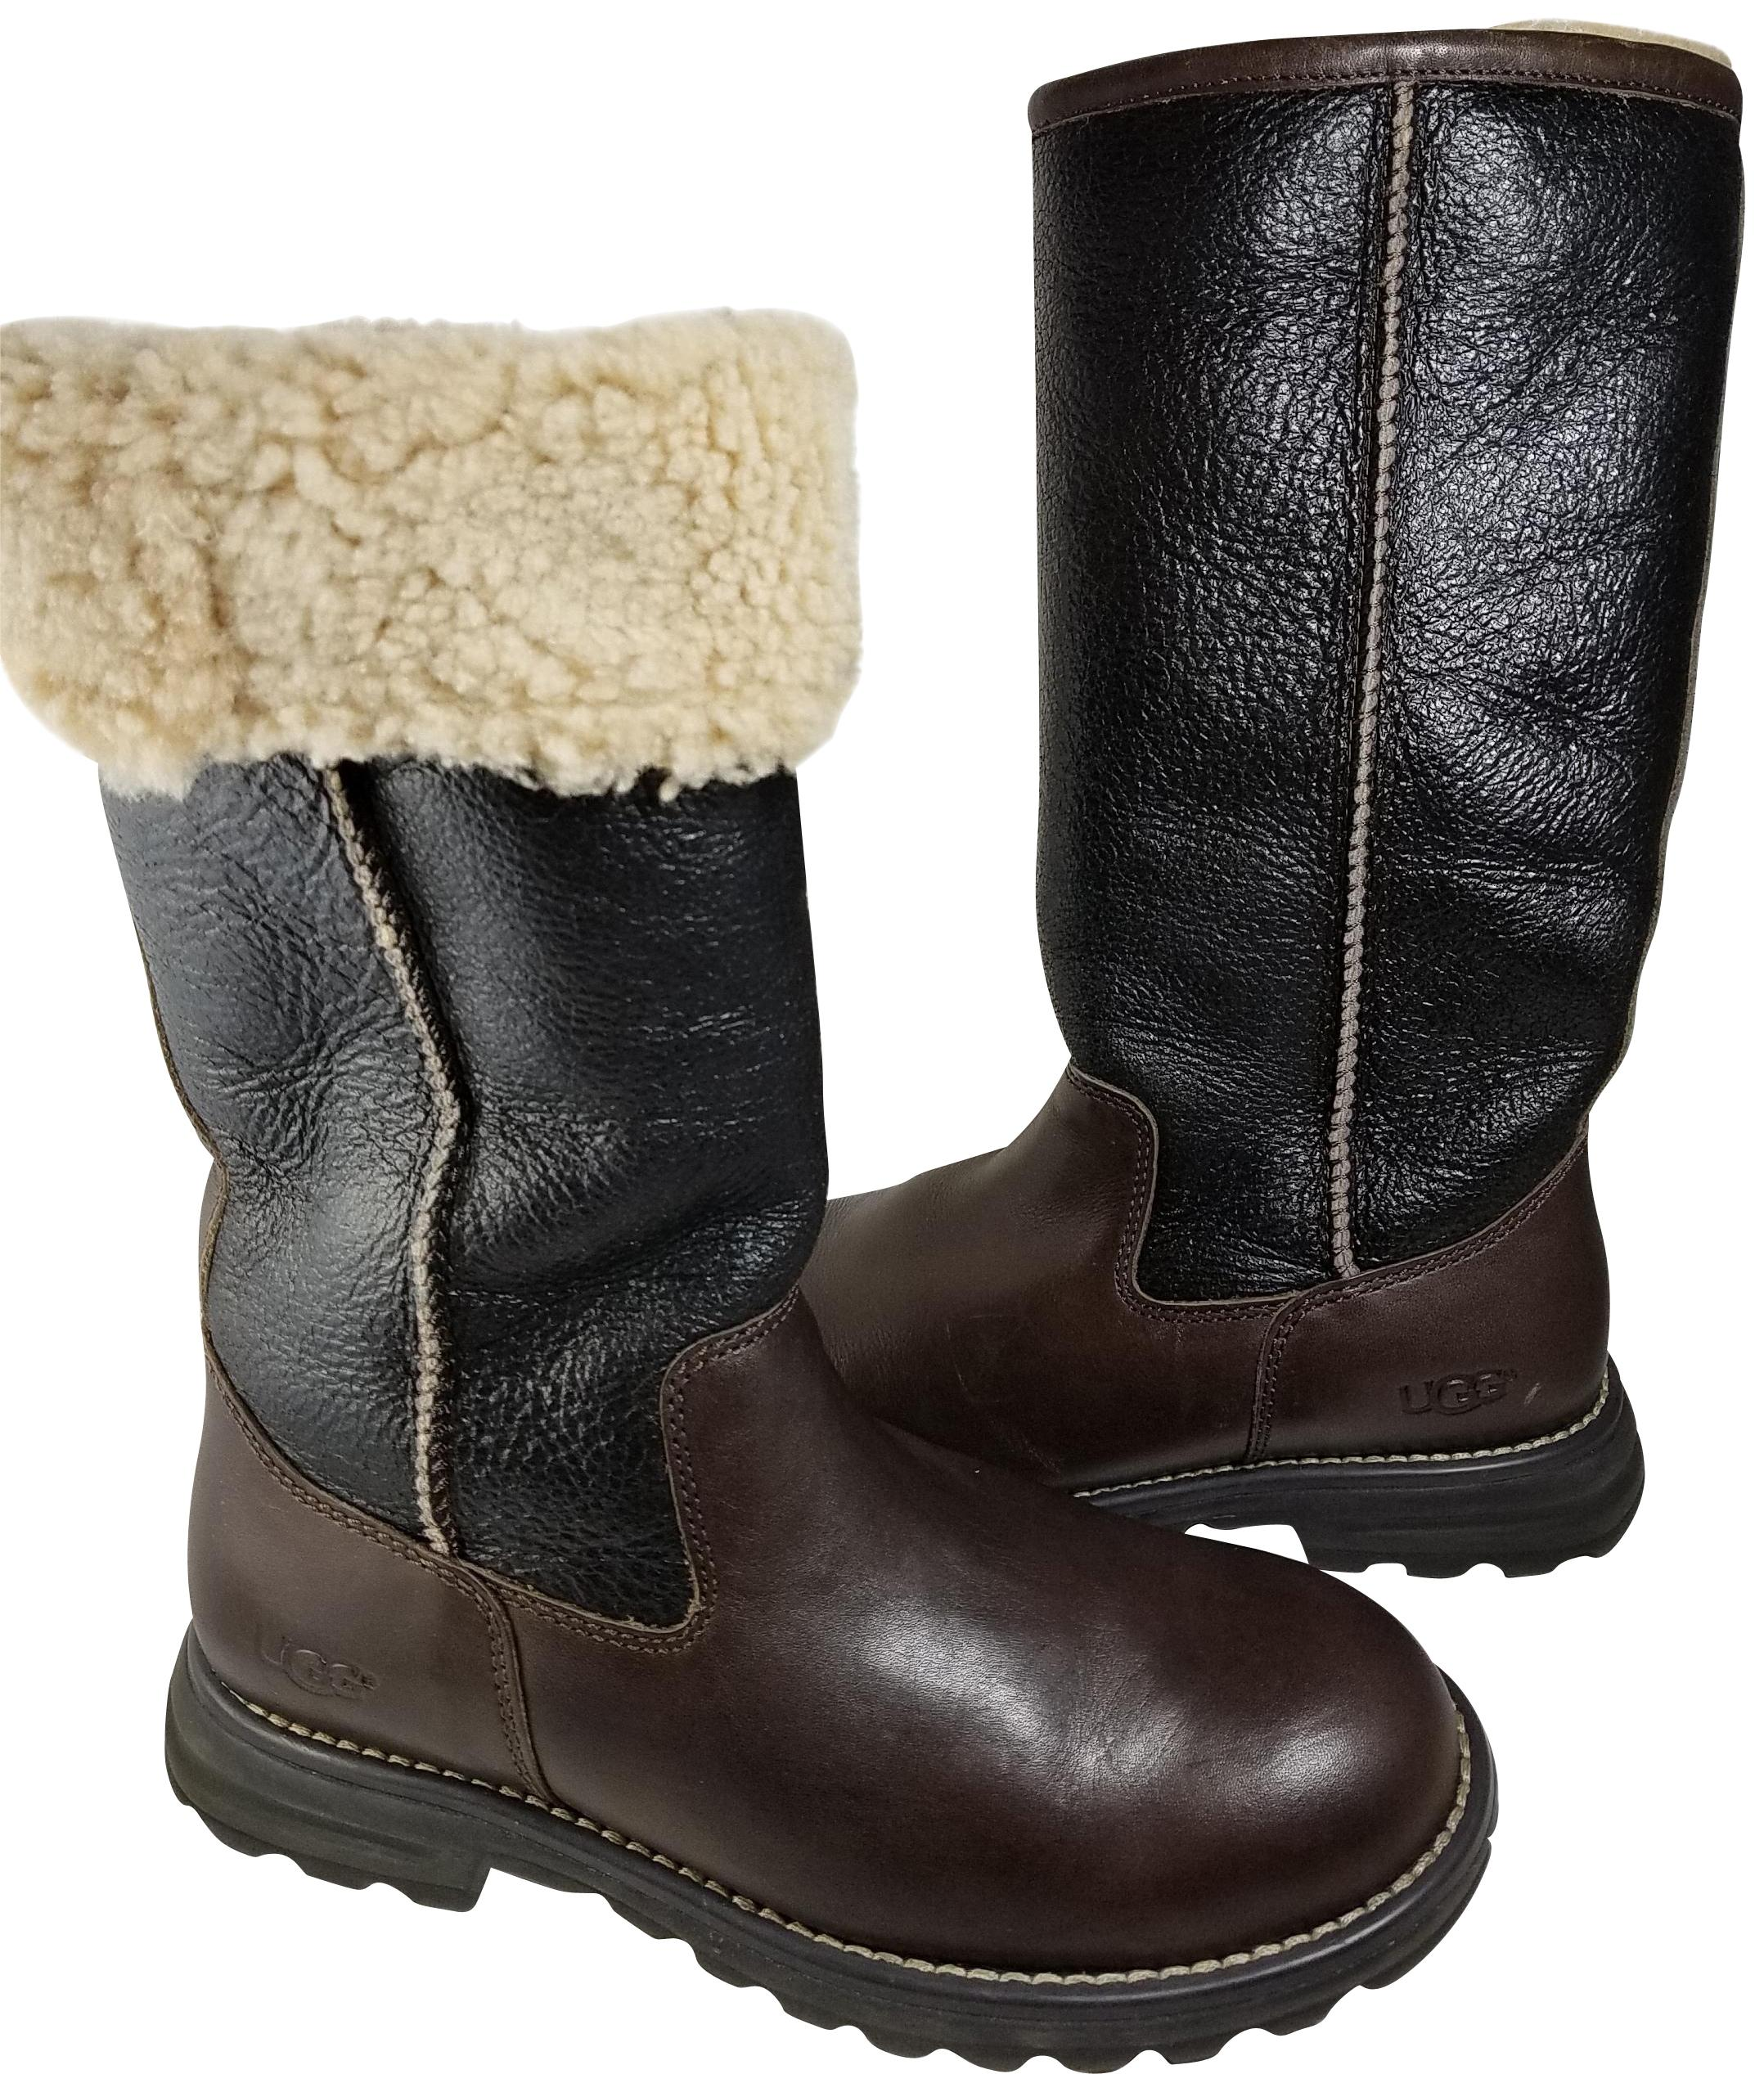 b9f4b20ae35 reduced ugg brooks tall 5490 womens boots 6e815 c4025